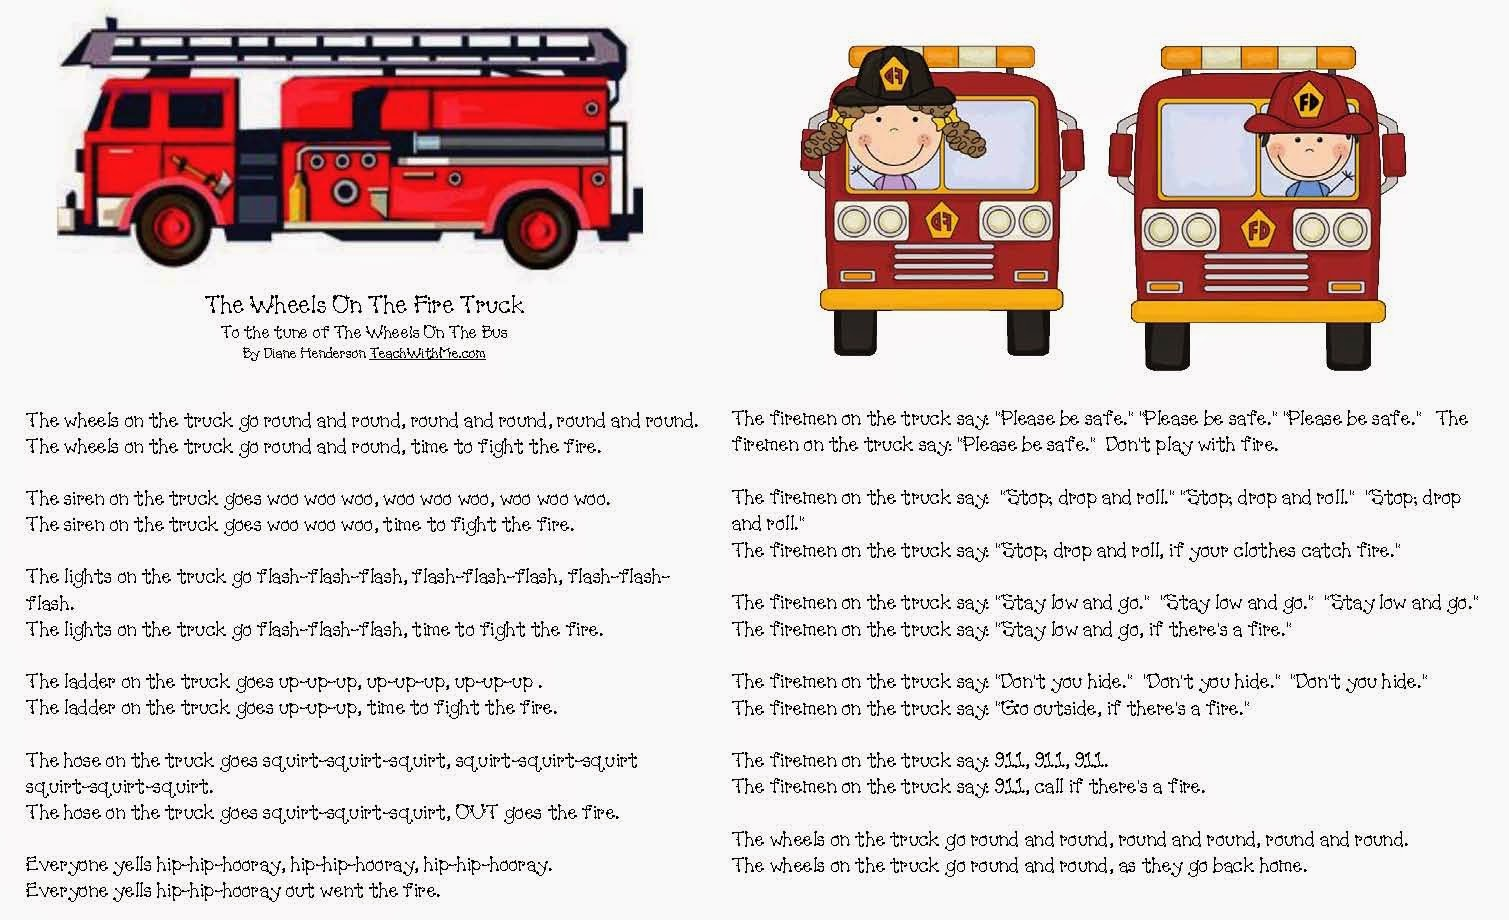 Classroom Freebies The Wheels On The Fire Truck Go Round